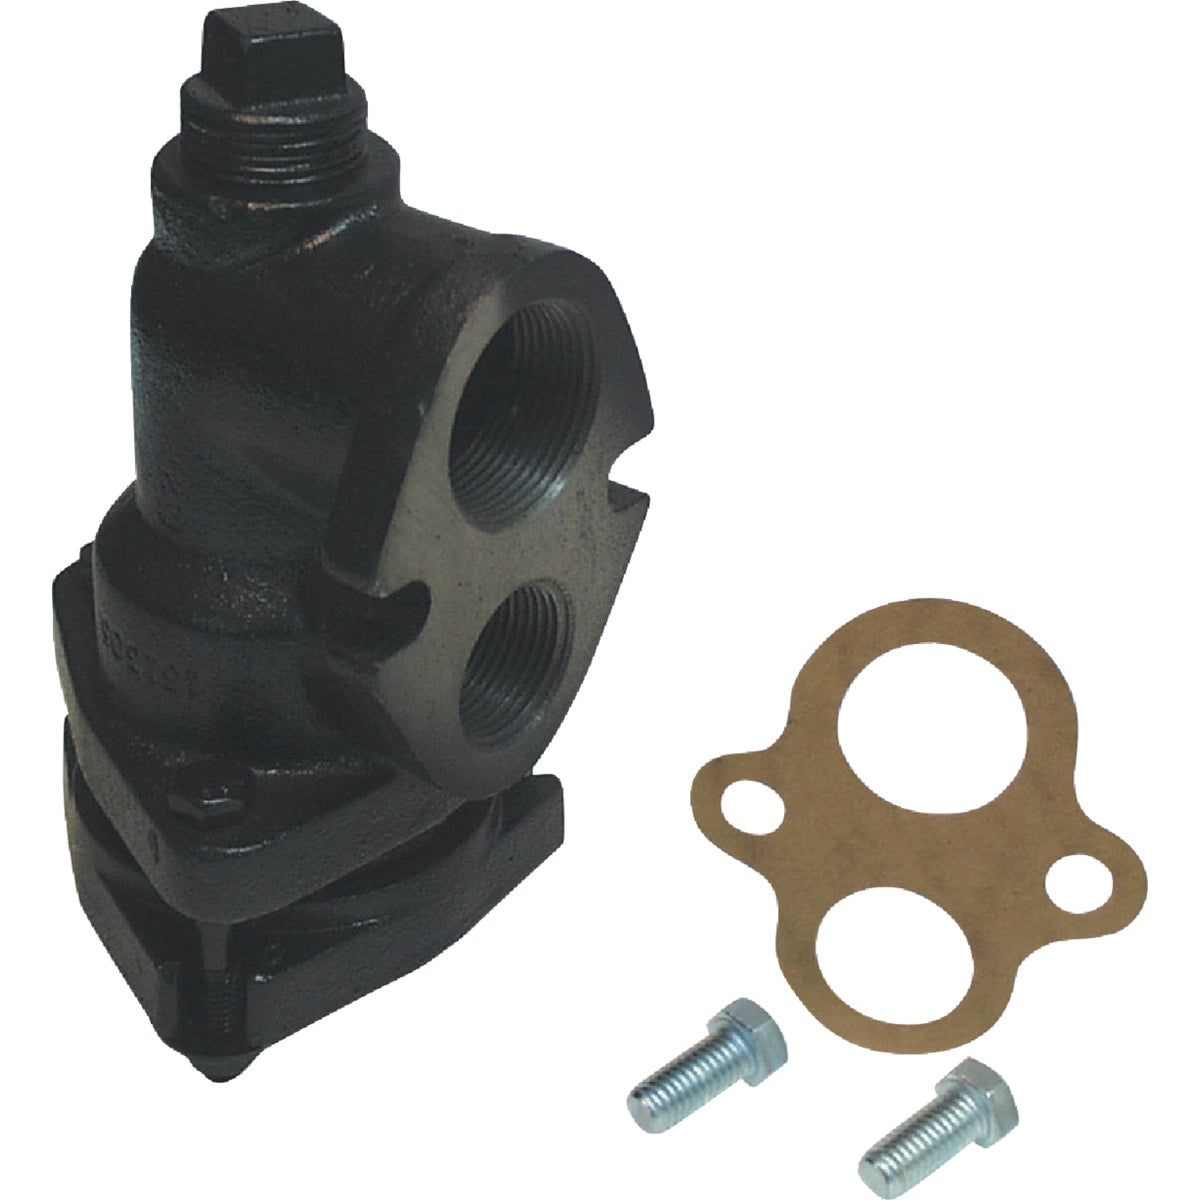 "2"" RIGHT ANGLE ADAPTER - 127025 by Star Water Systems"